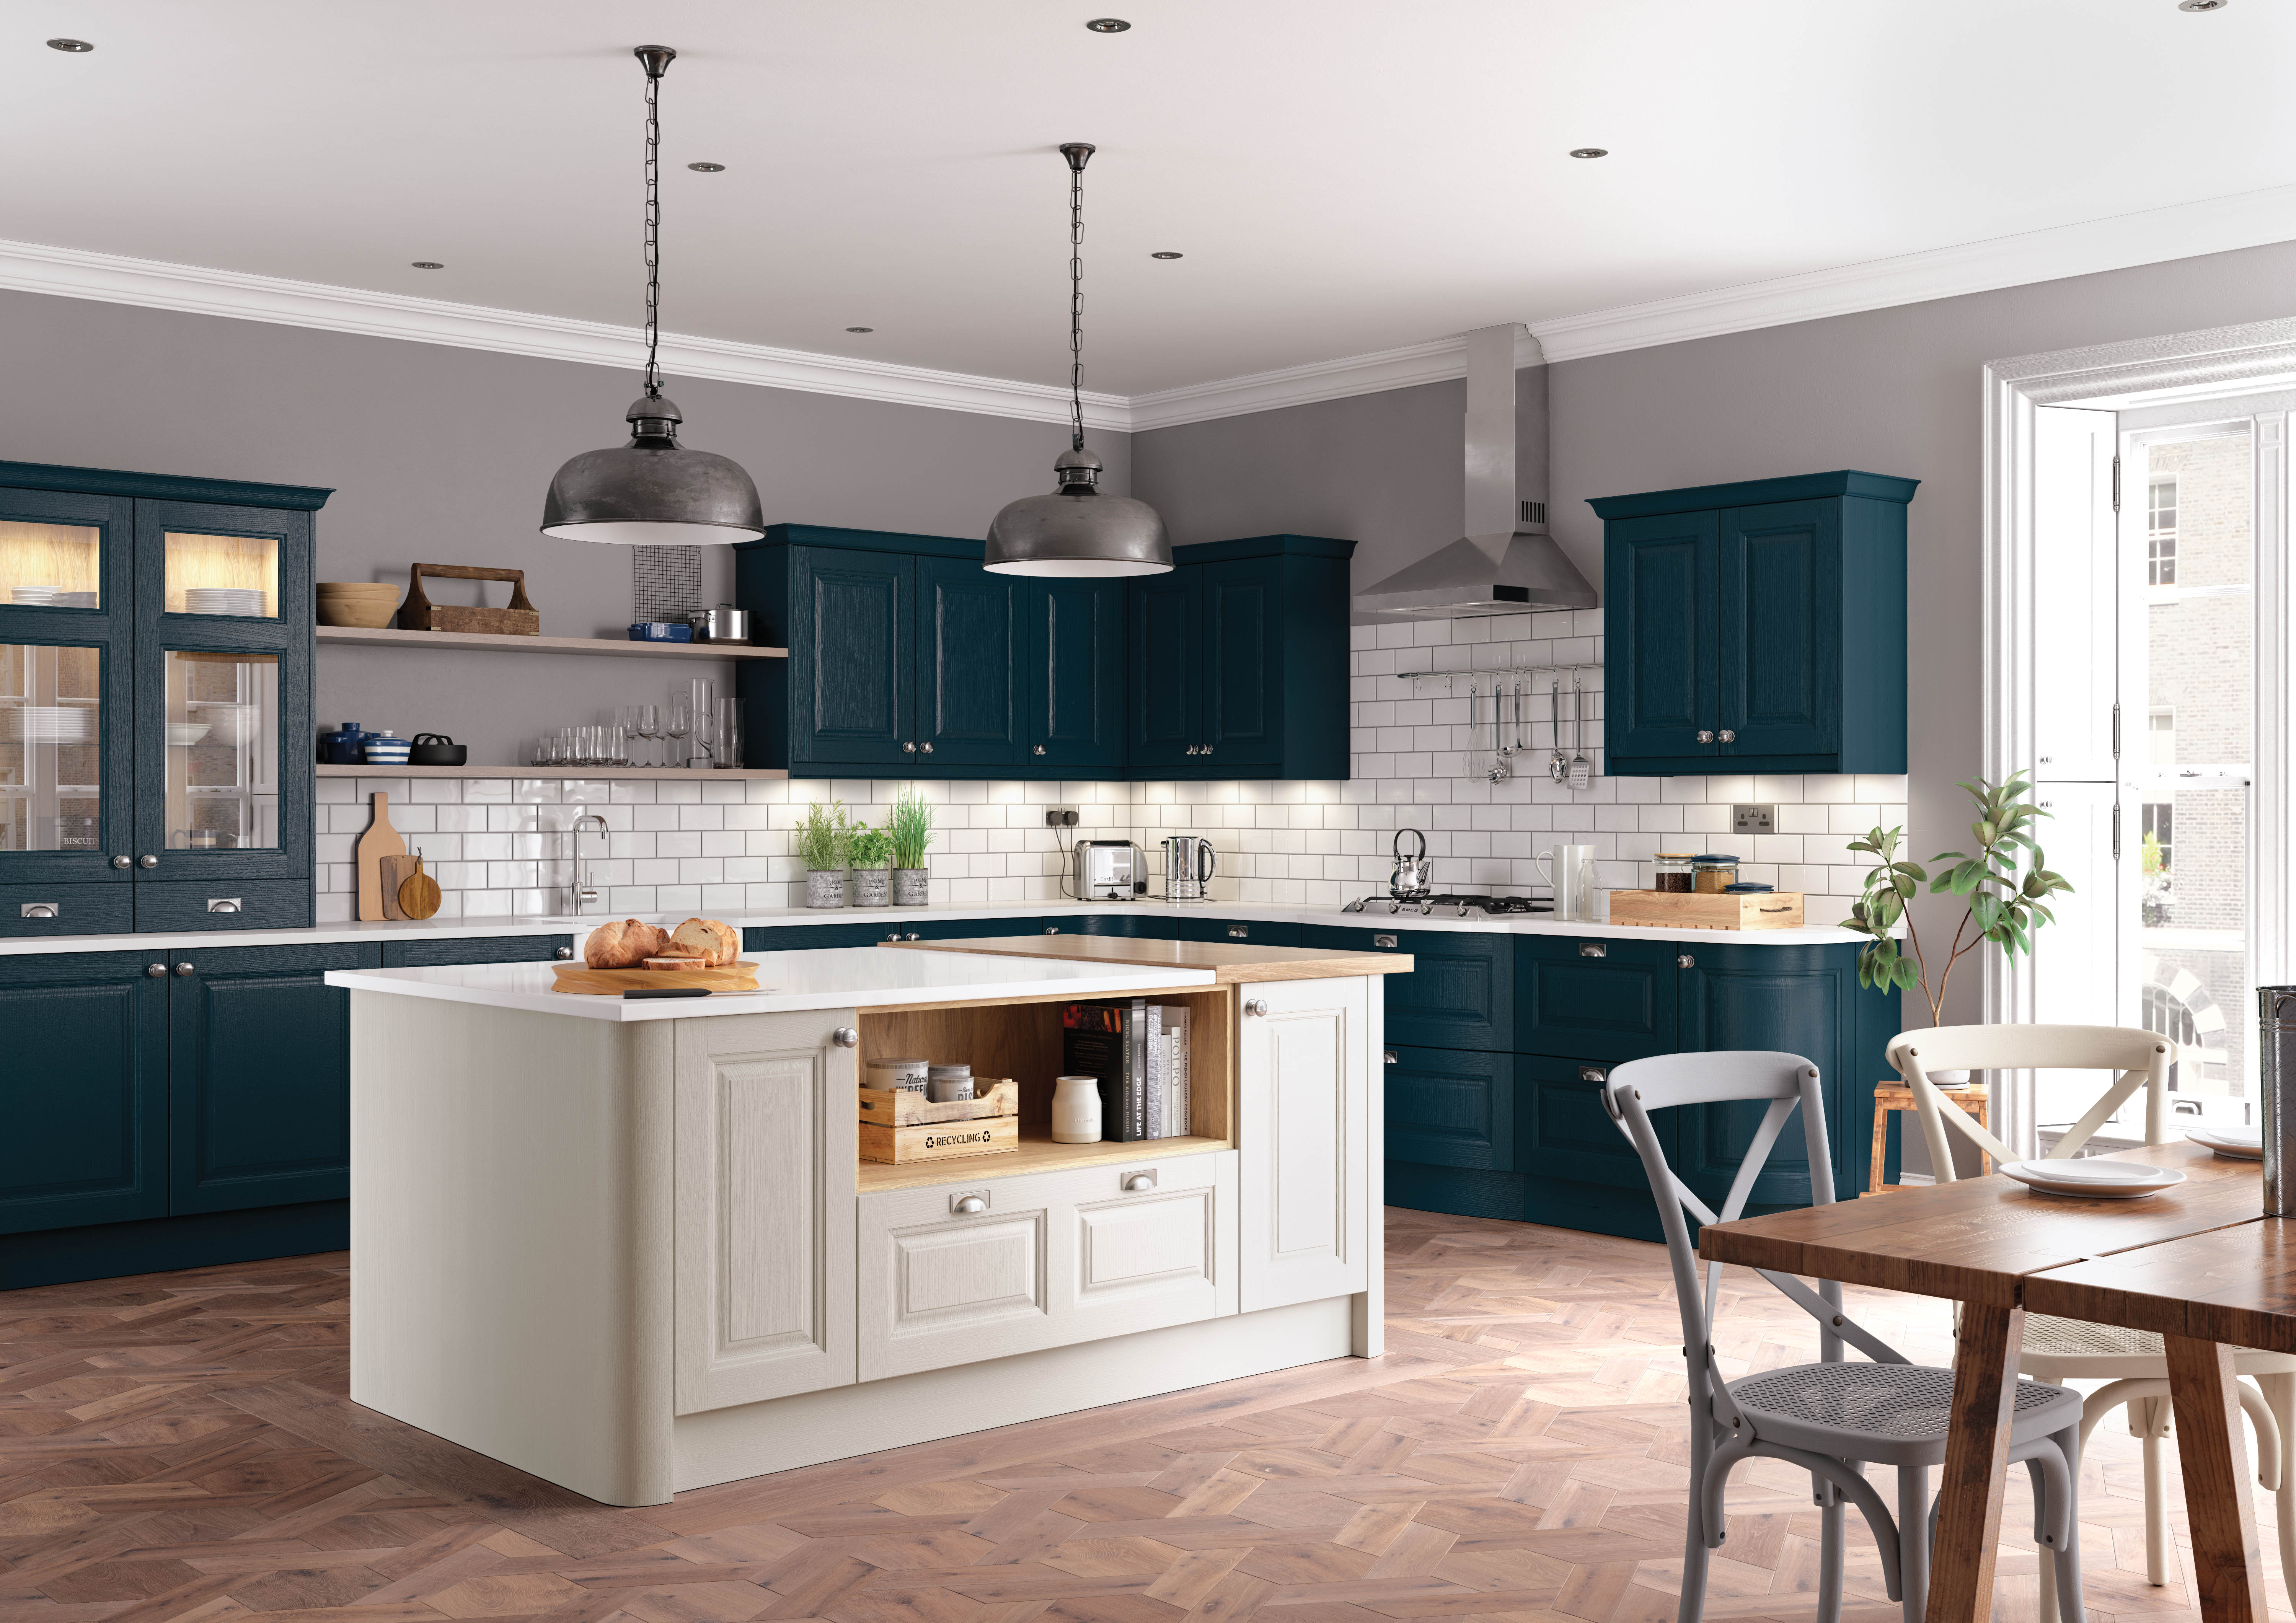 Charnwood Kitchen in Shell and Marine